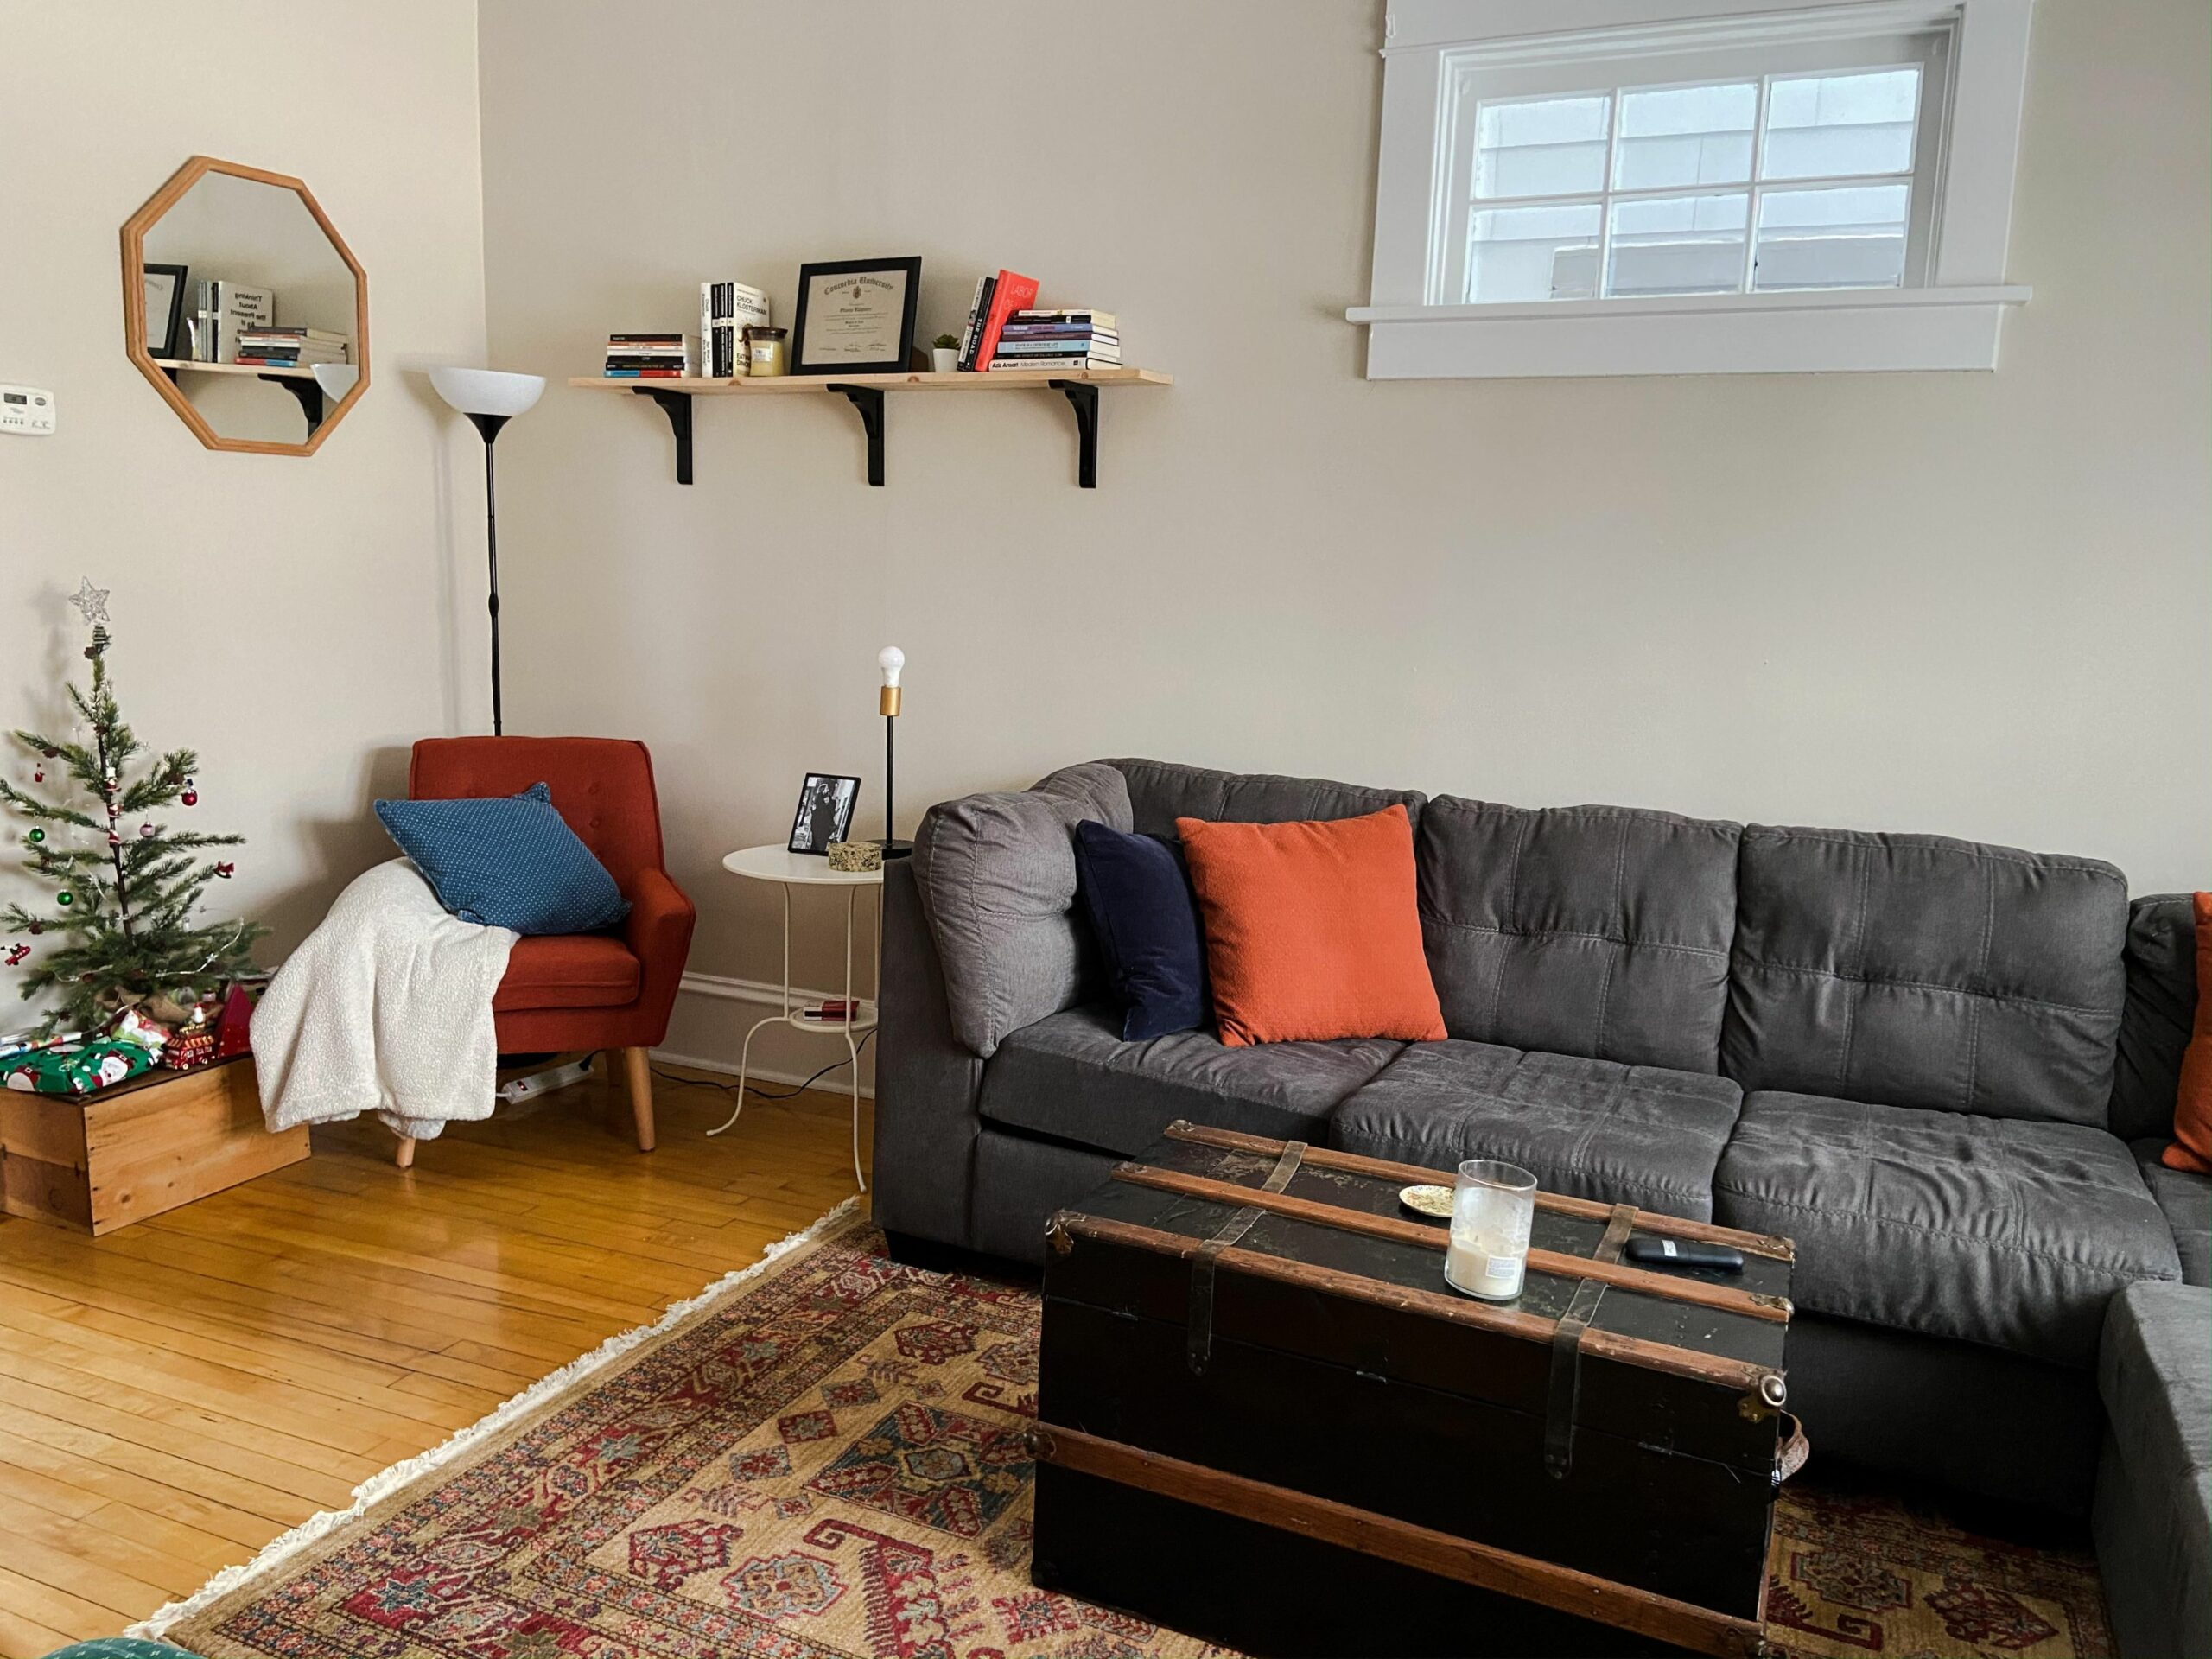 Living room in 8 year old house - Winnipeg MB - Daily Home Decor ...